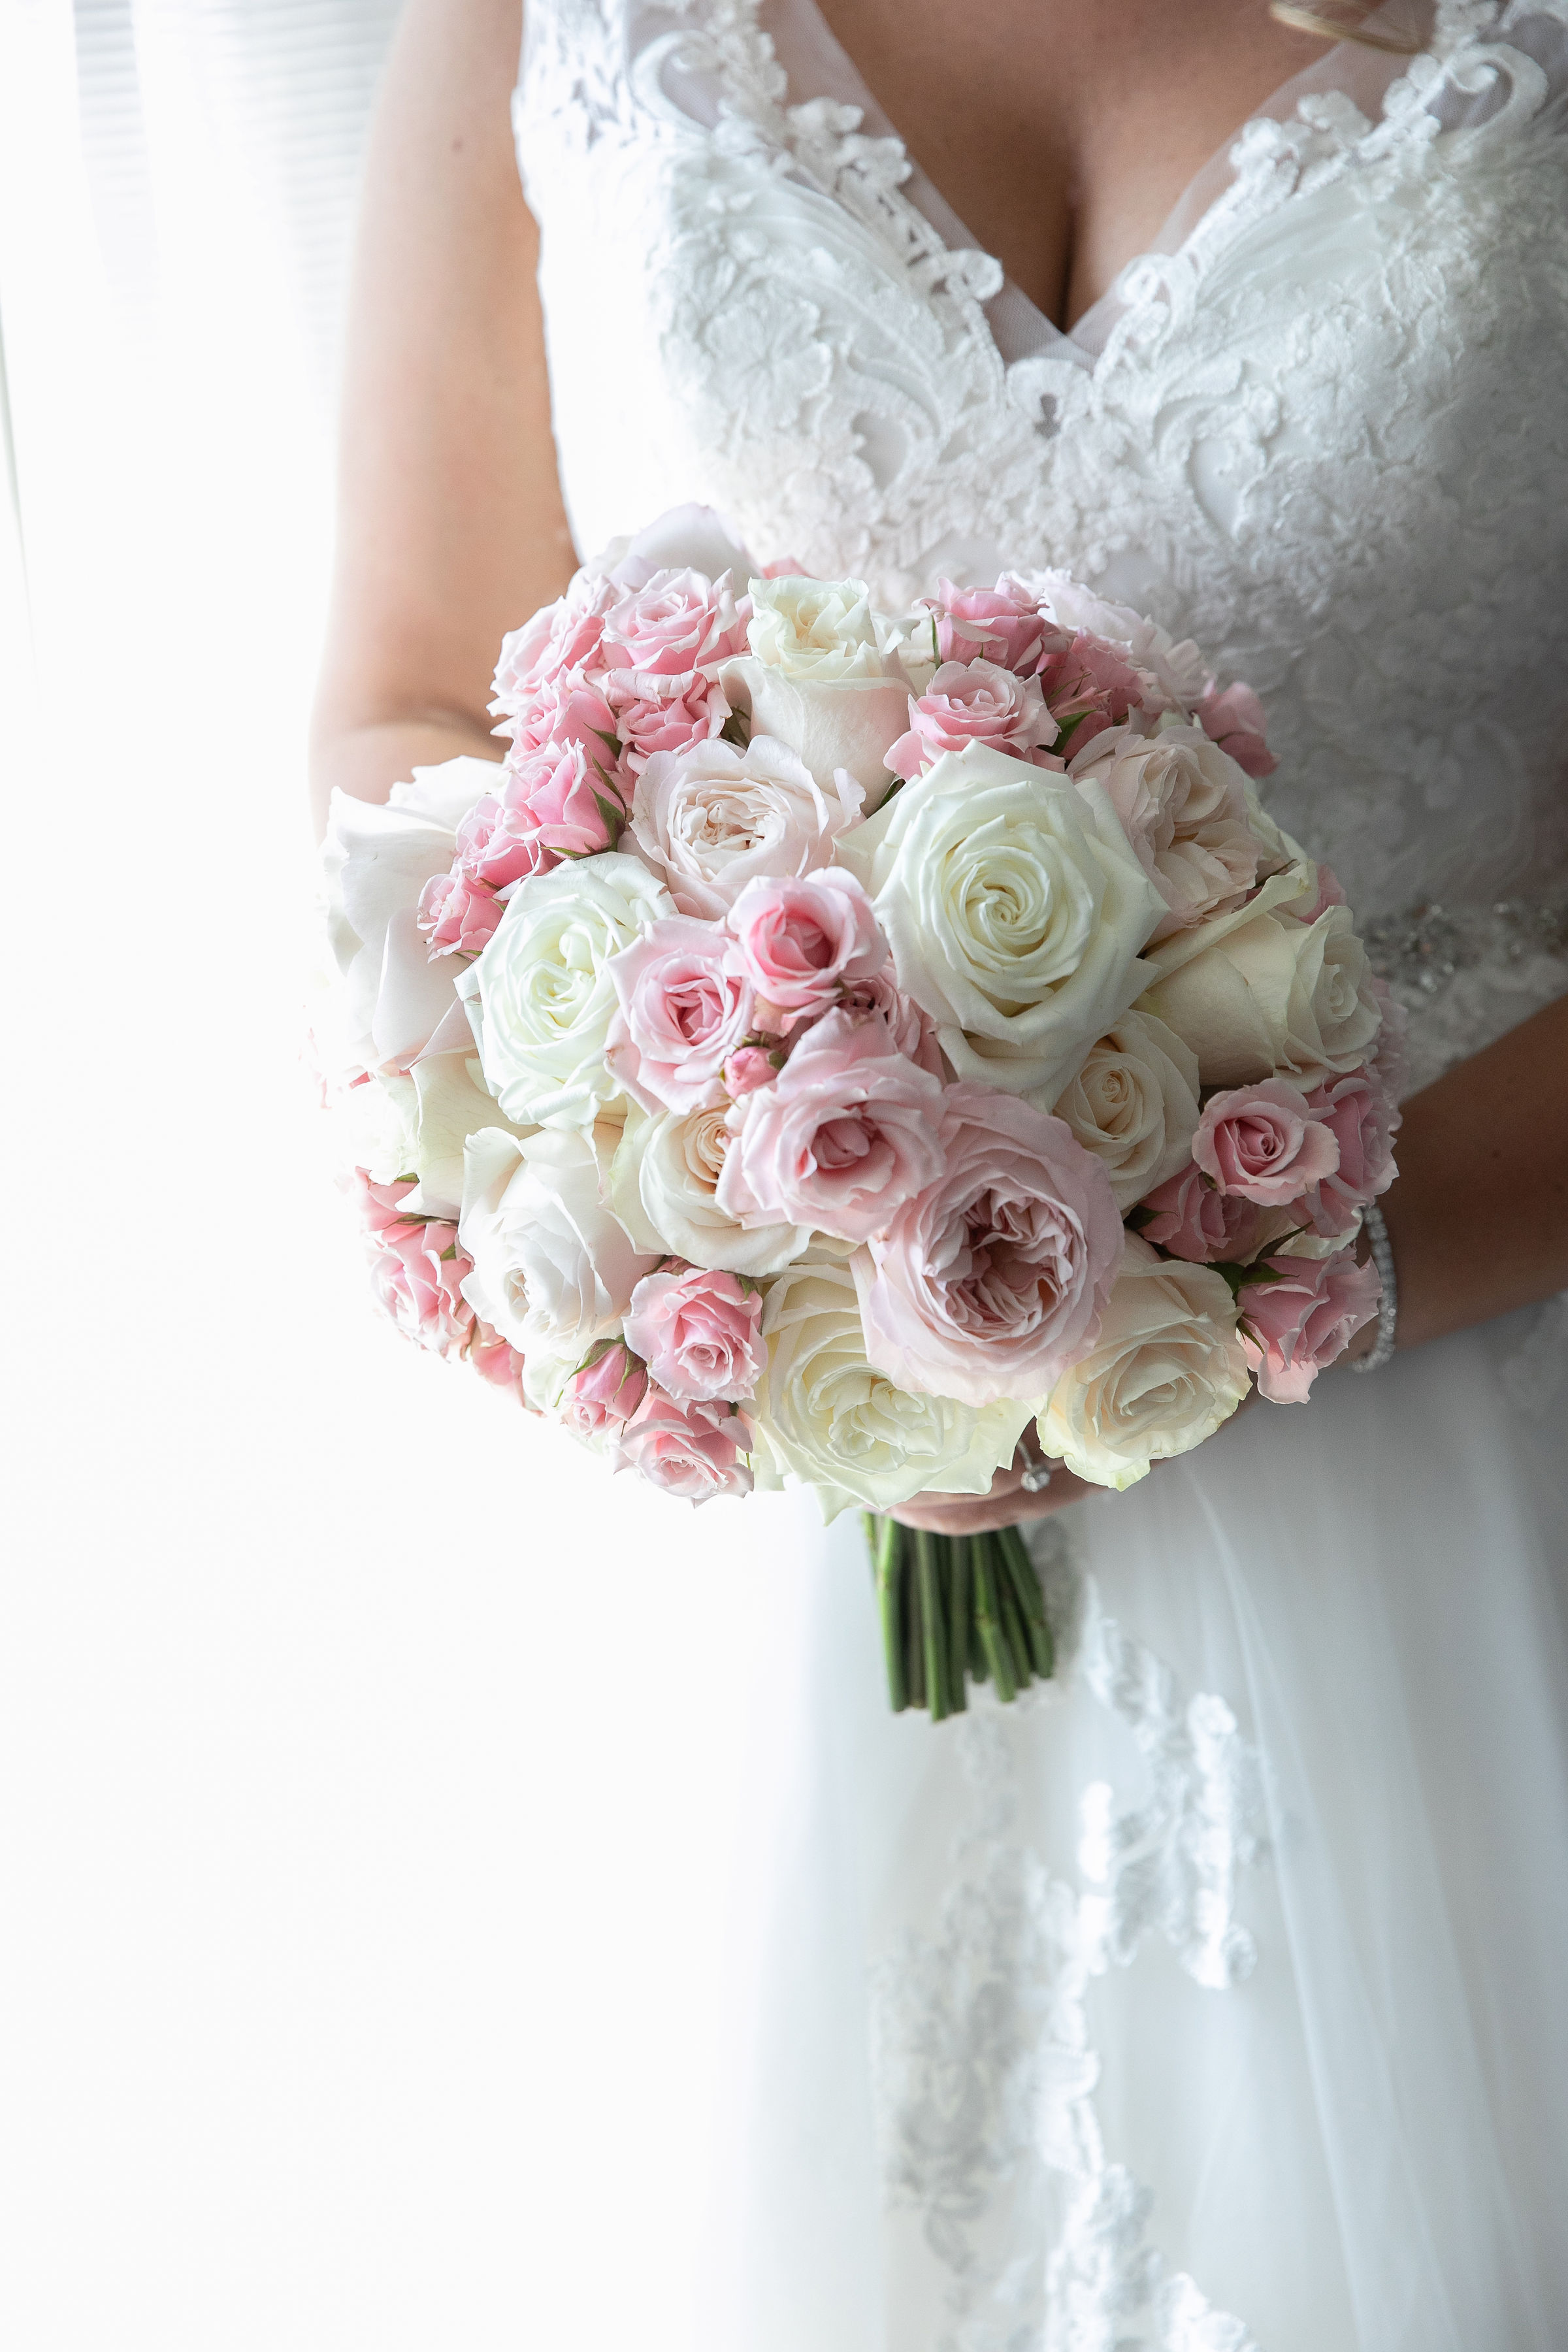 Pink Spray Roses, Pale Pink Garden Roses, & Ivory Garden Roses are the stunning blossoms in this classically round bridal bouquet.   (Corinna Raznikov Photography)